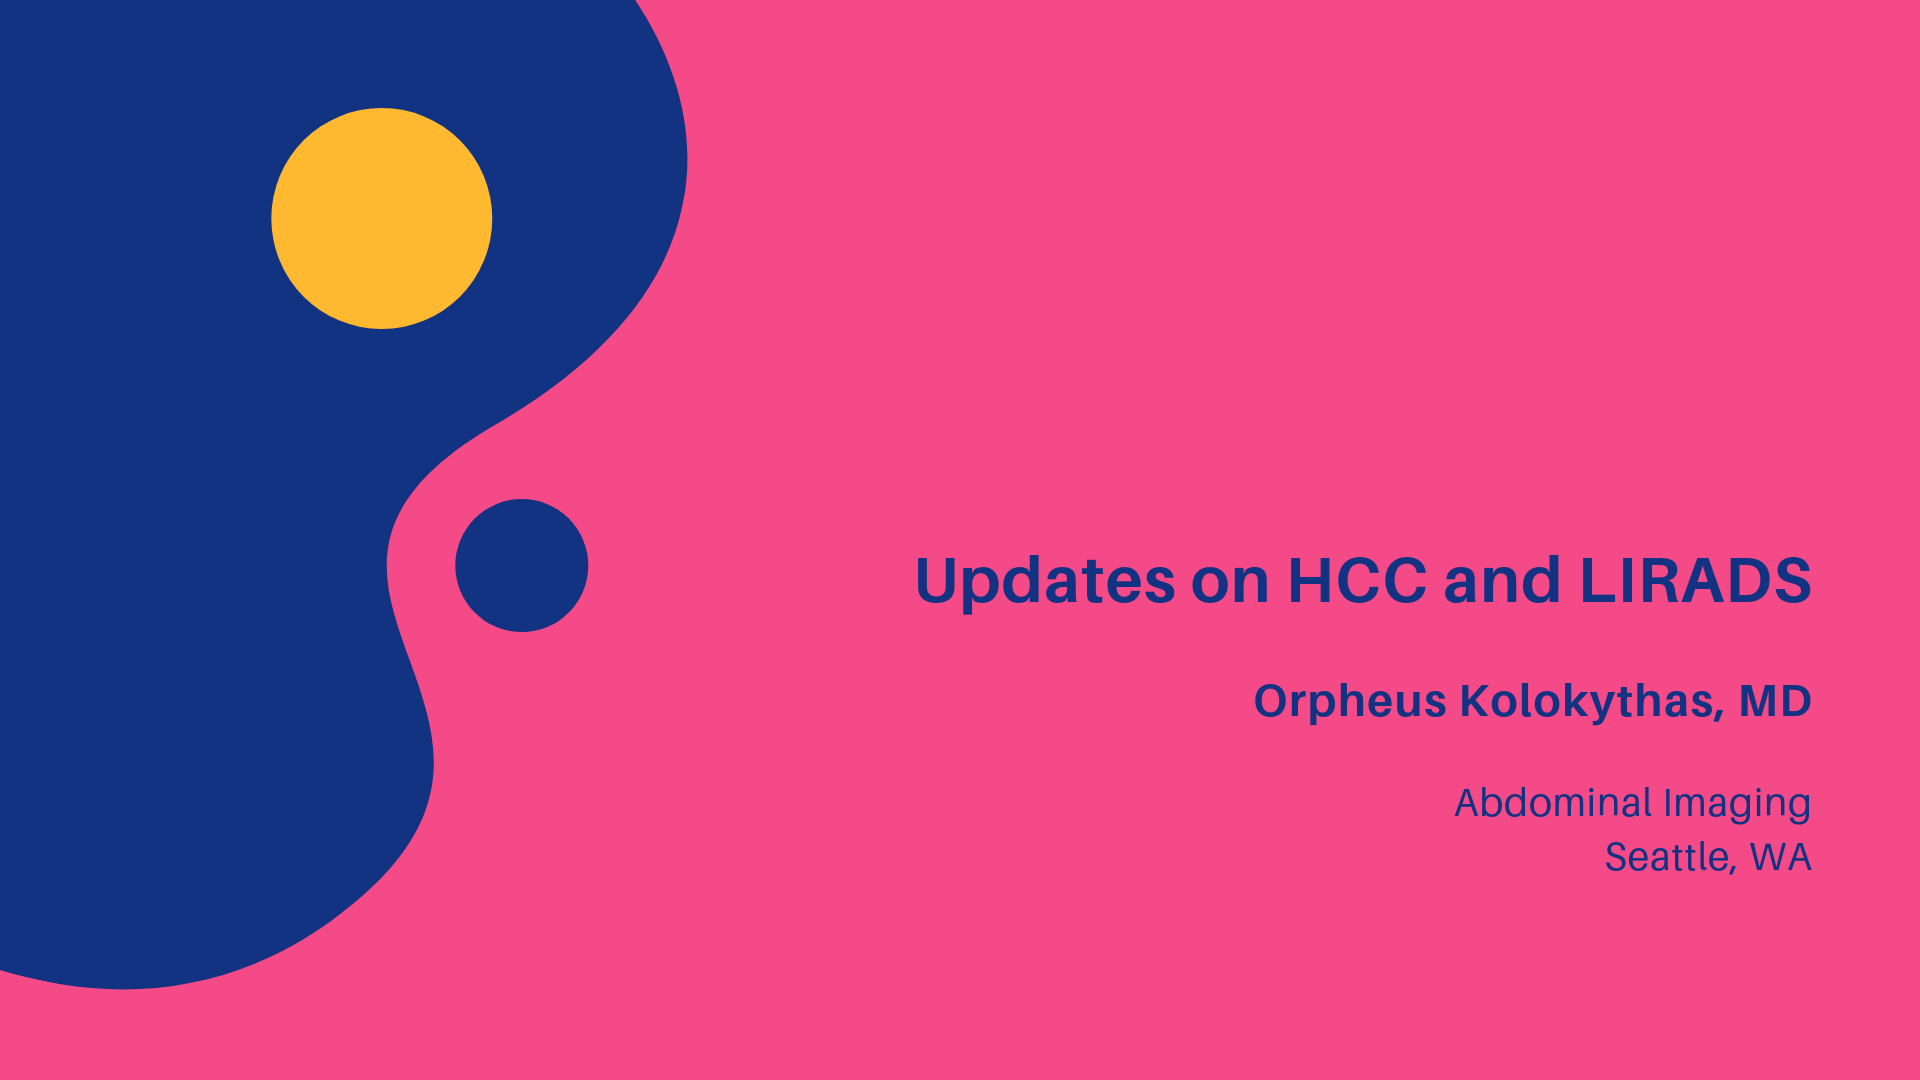 HCC Updates and LIRADS